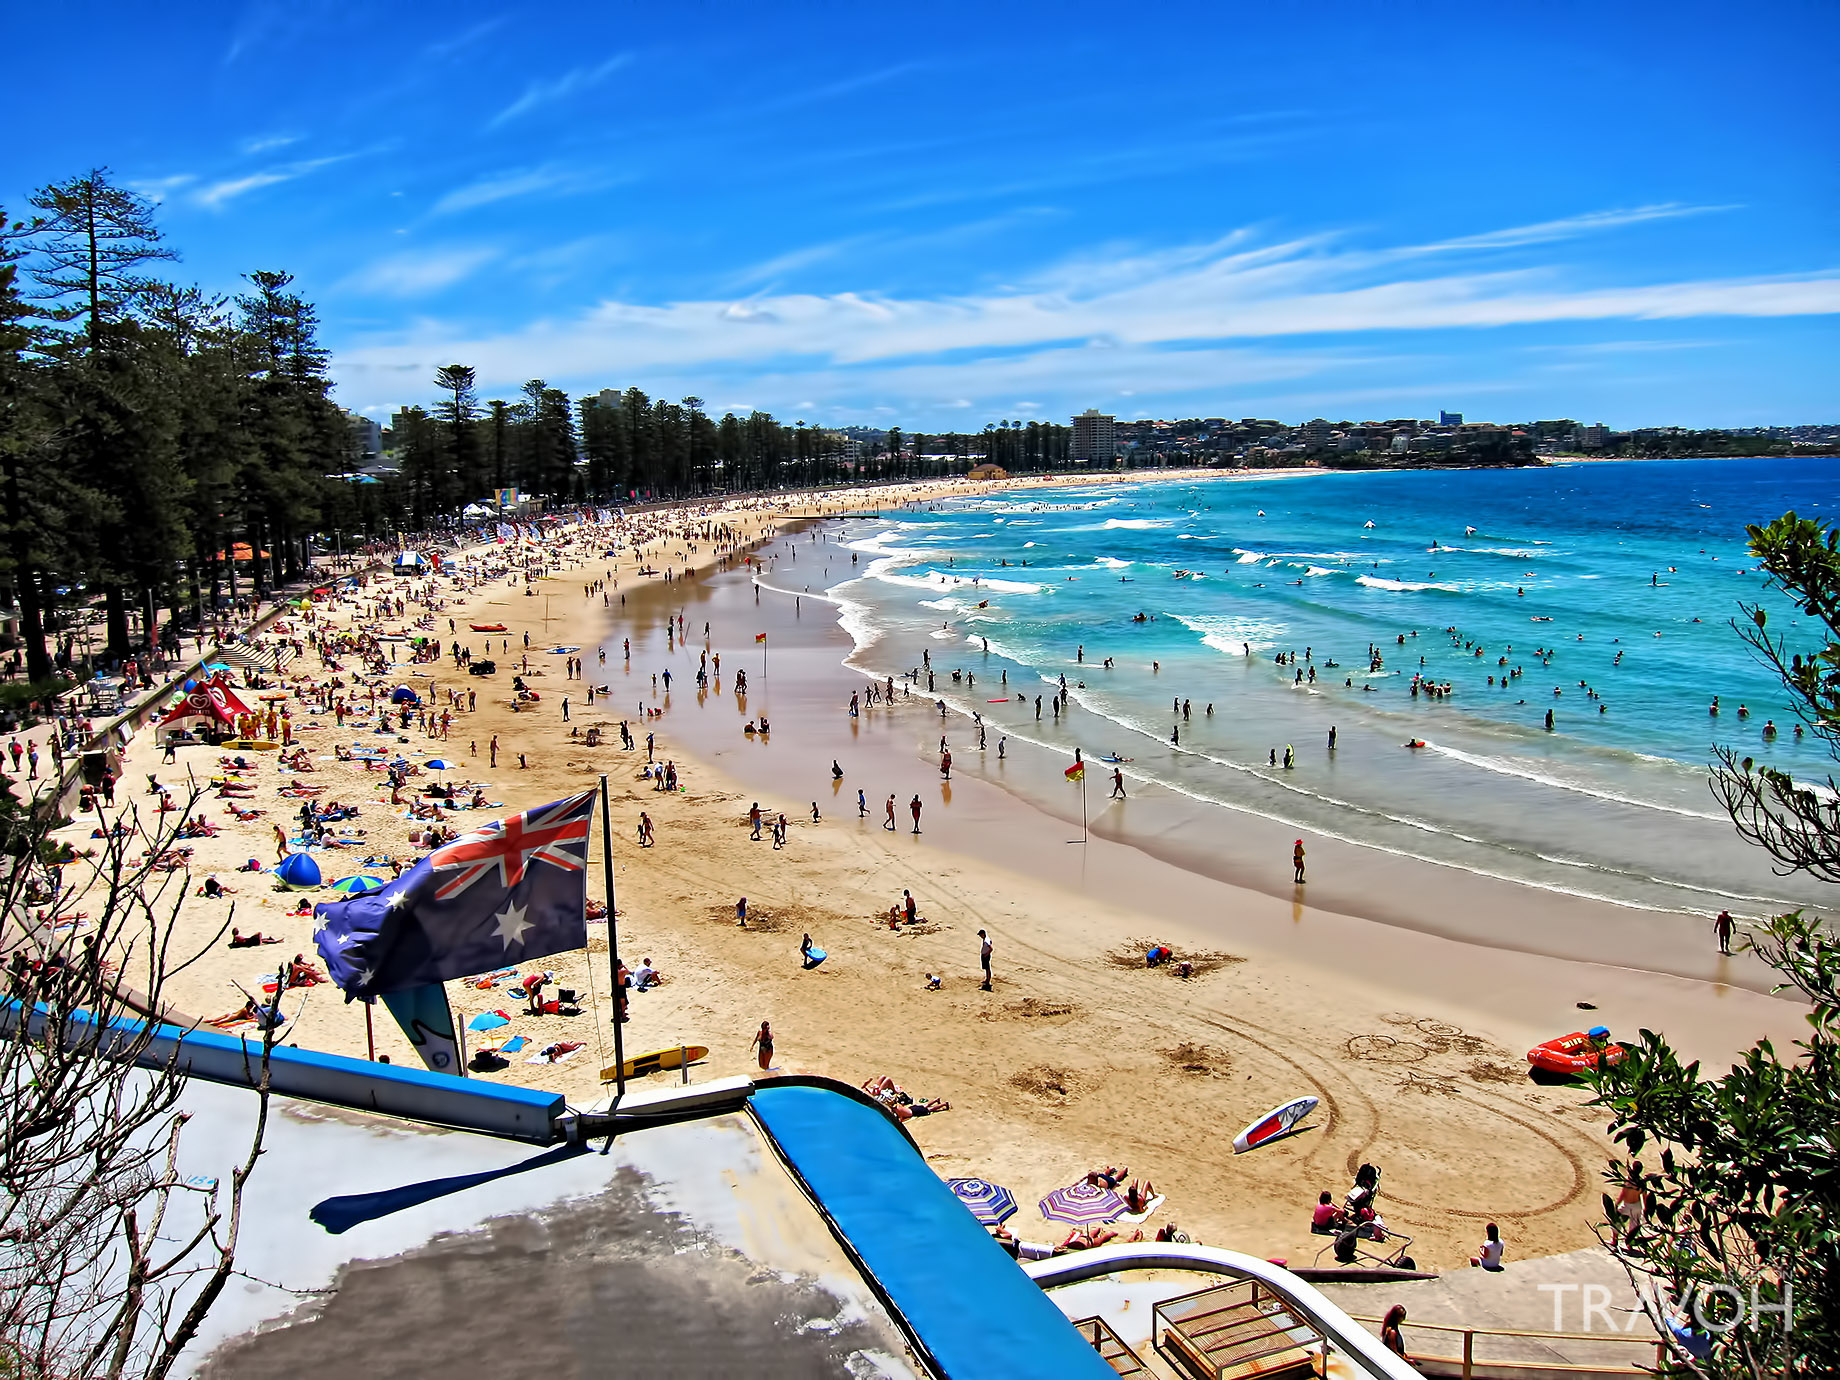 Manly Beach Exploring 10 Of The Top Beaches In Sydney Australia